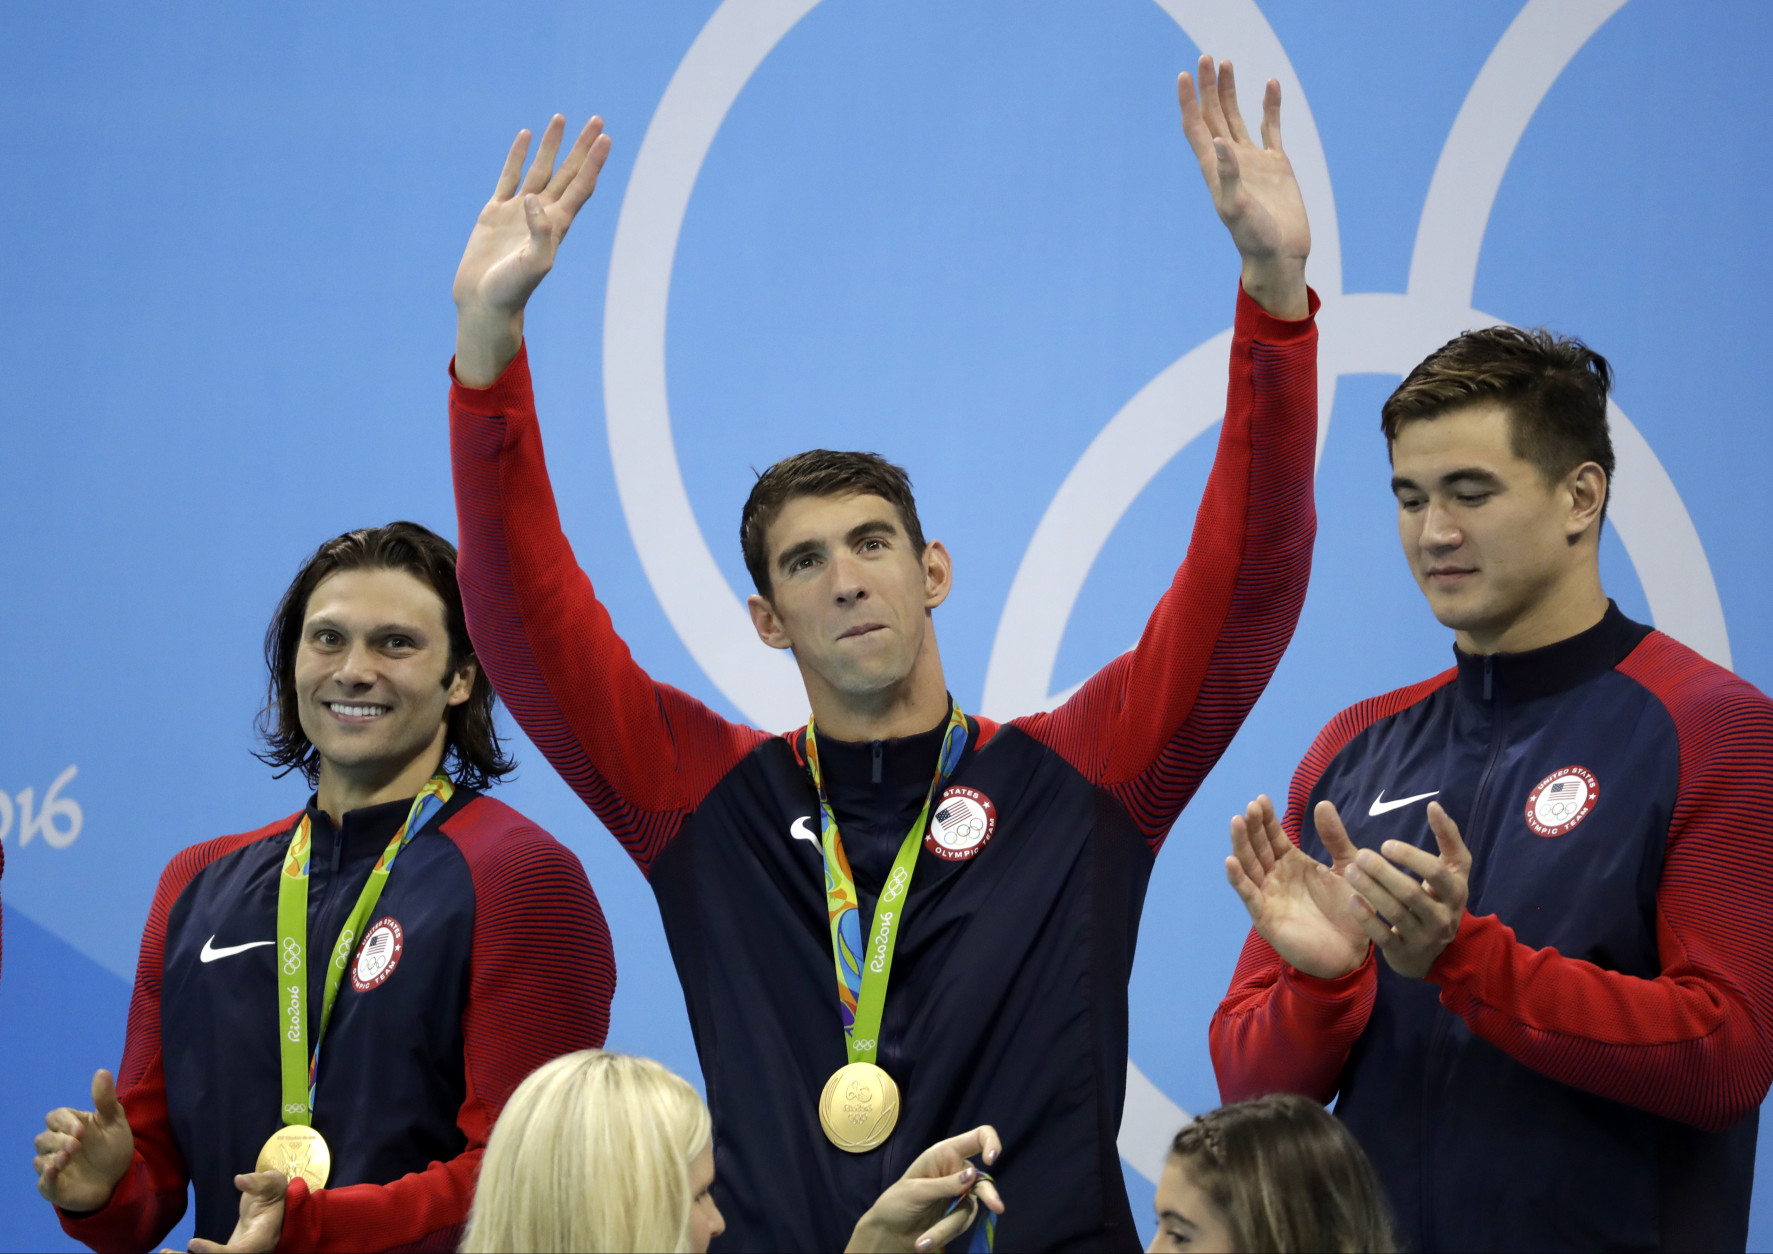 United States' Michael Phelps waves as teammates Cody Miller, left, and Nathan Adrian look on during the medal ceremony for the men's 4 x 100-meter medley relay final during the swimming competitions at the 2016 Summer Olympics, Sunday, Aug. 14, 2016, in Rio de Janeiro, Brazil. (AP Photo/Rebecca Blackwell)